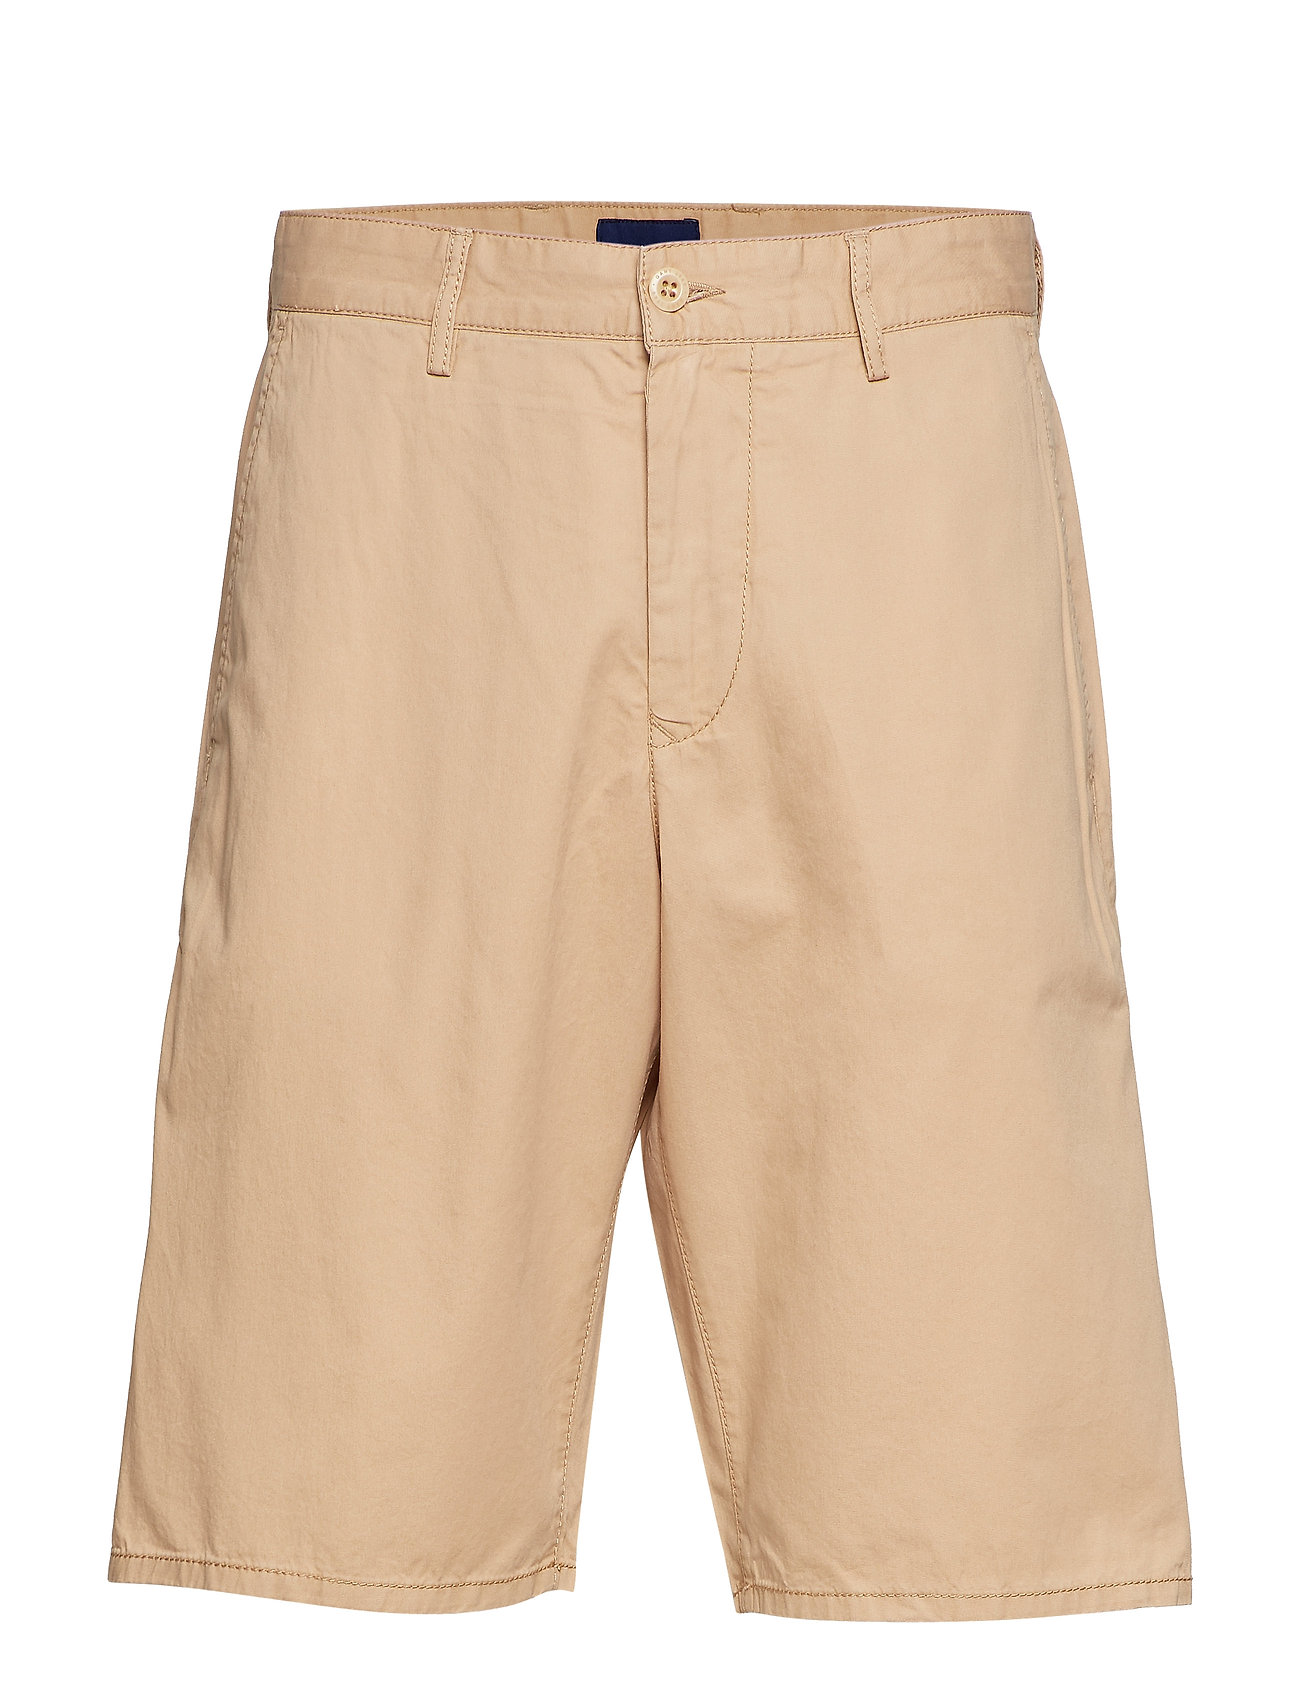 MD. RELAXED SUMMER SHORTS